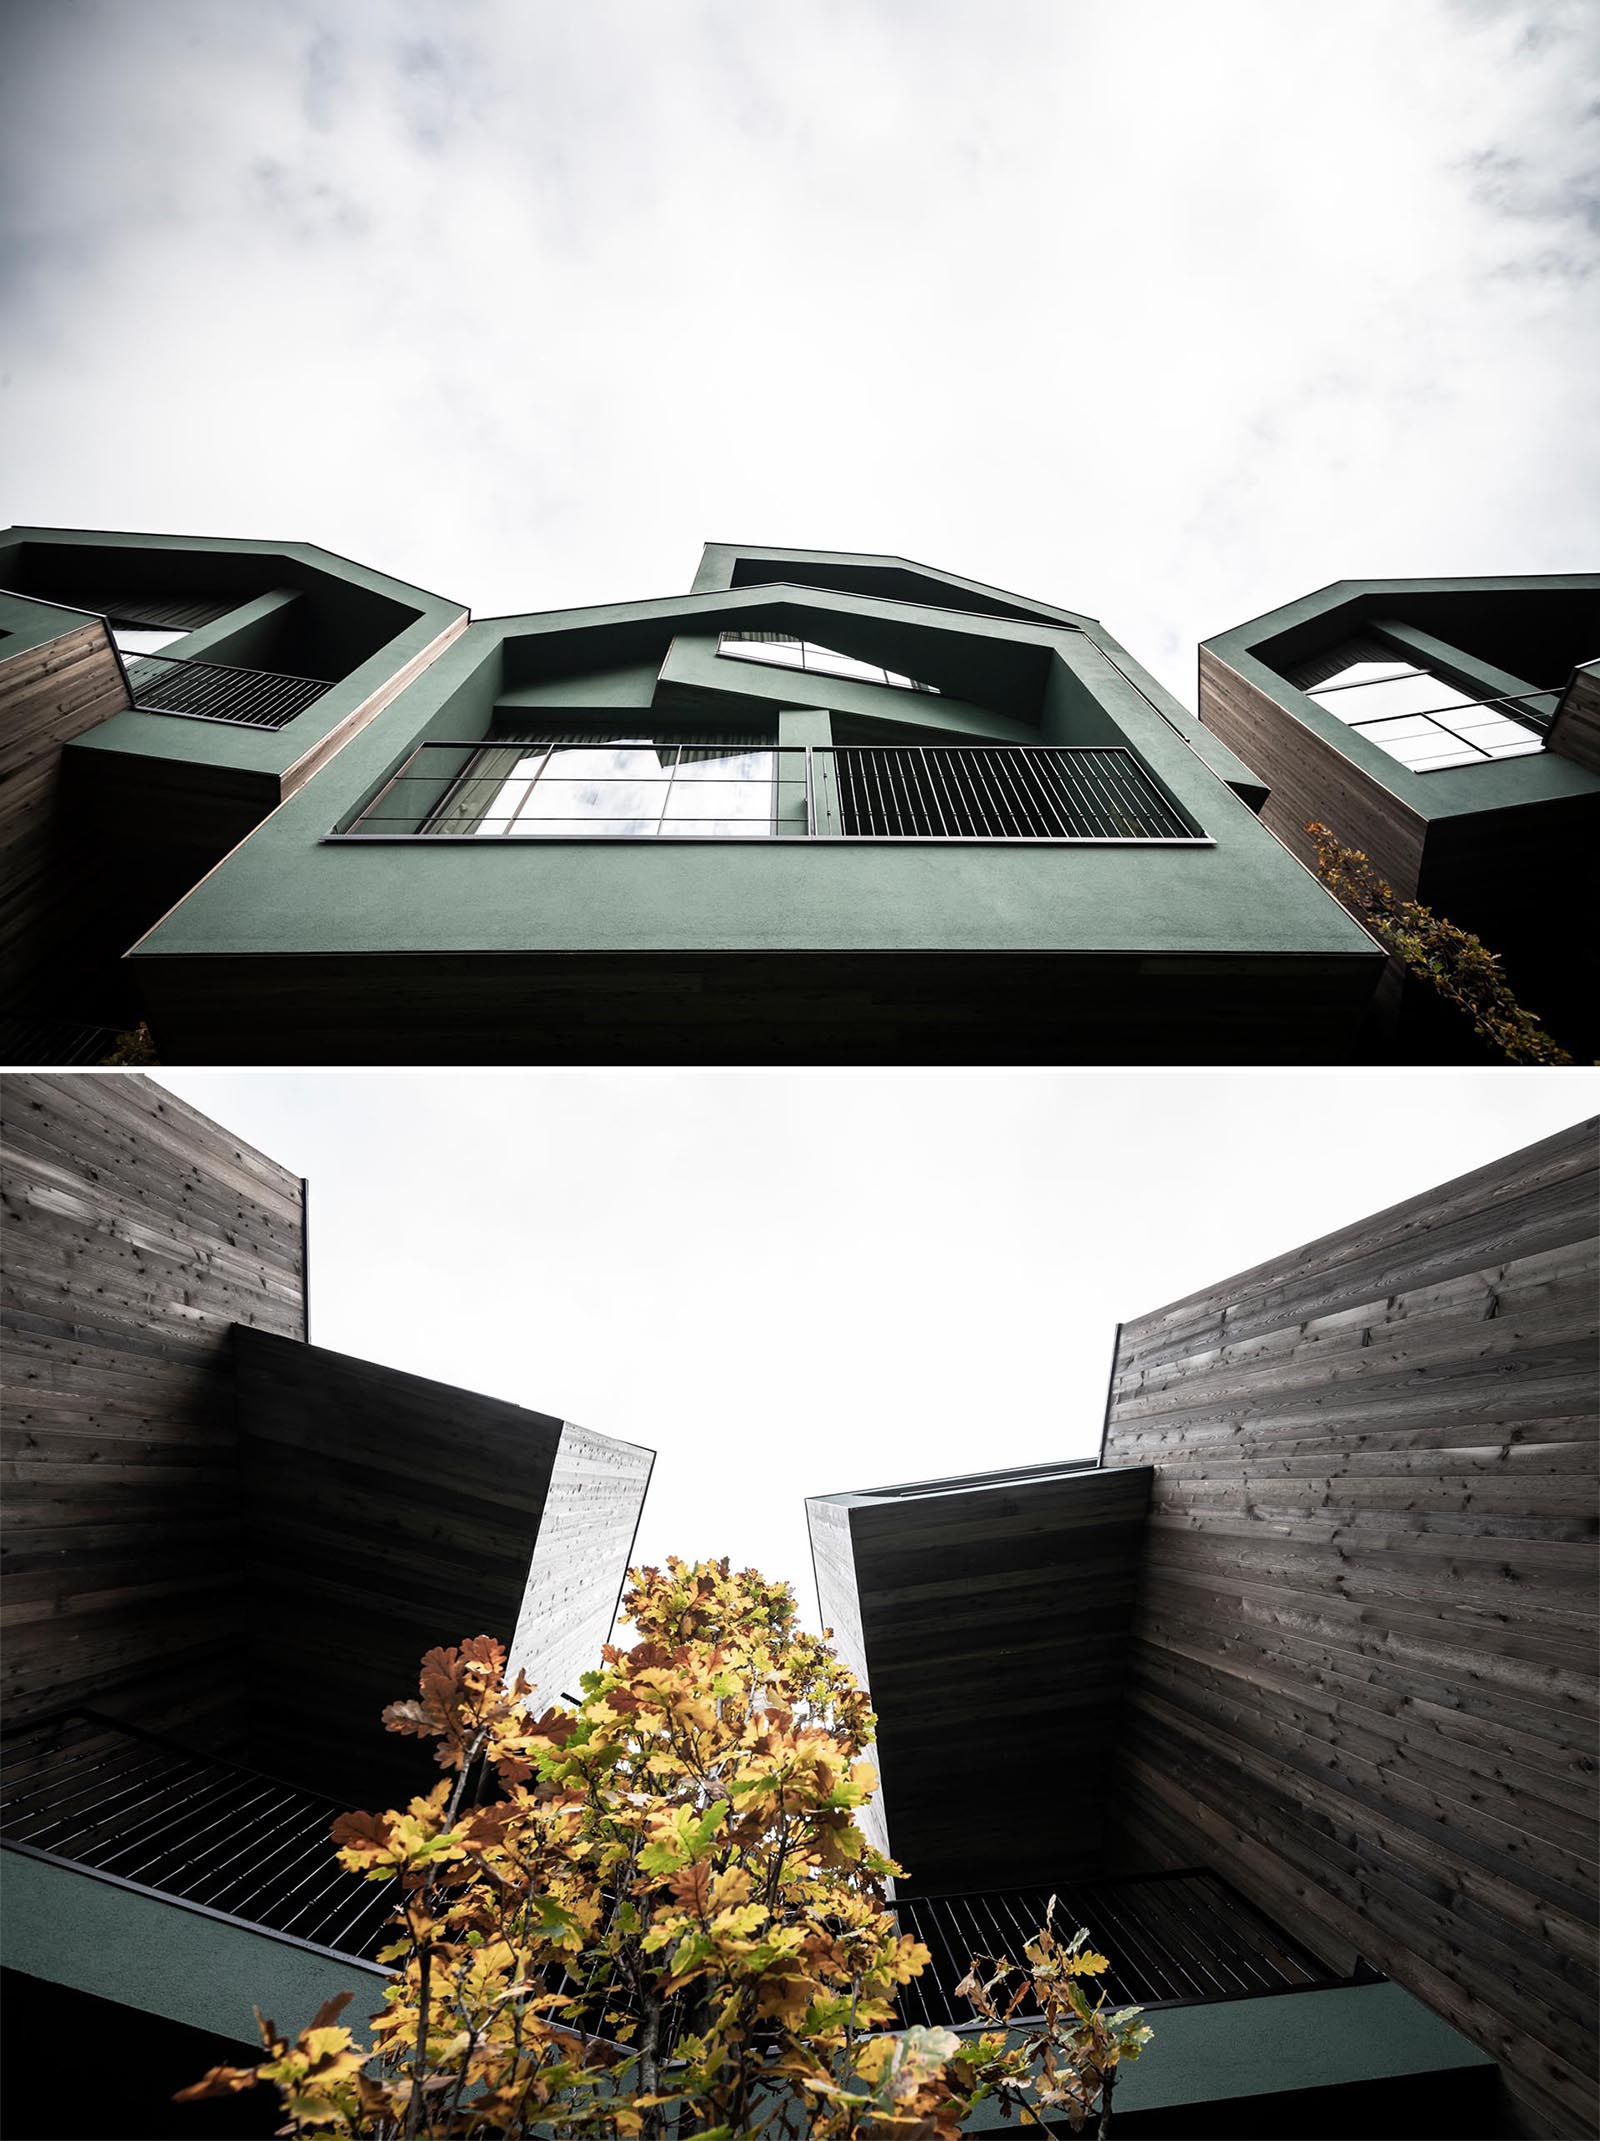 A collection of elevated hotel rooms with wood siding that are designed to look like tree houses.